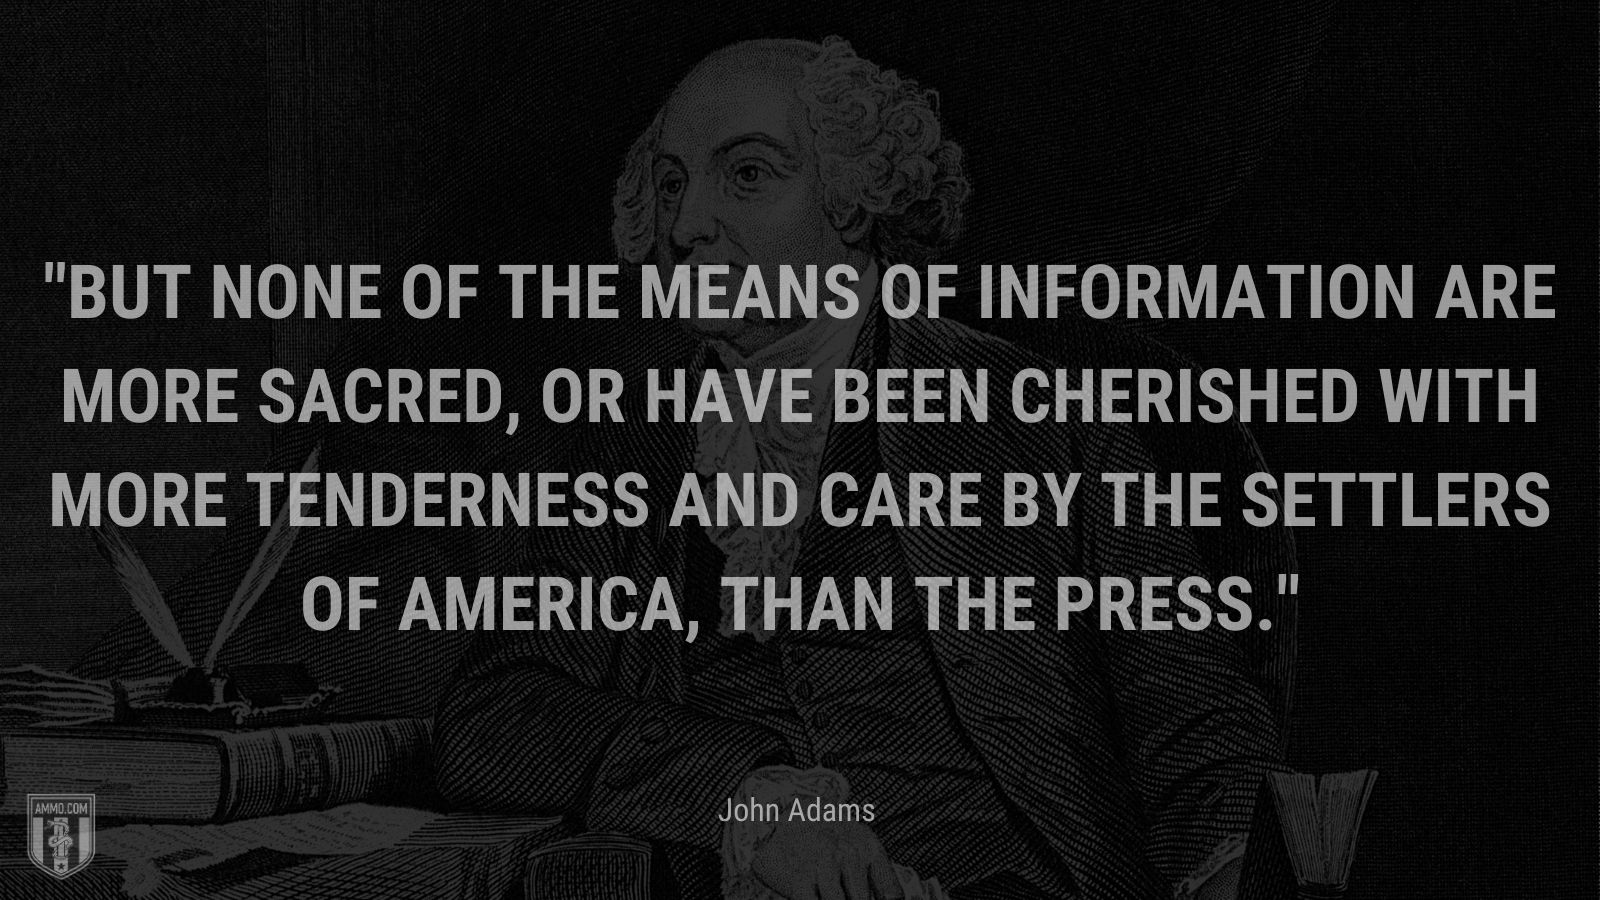 """""""But none of the means of information are more sacred, or have been cherished with more tenderness and care by the settlers of America, than the press."""" - John Adams"""